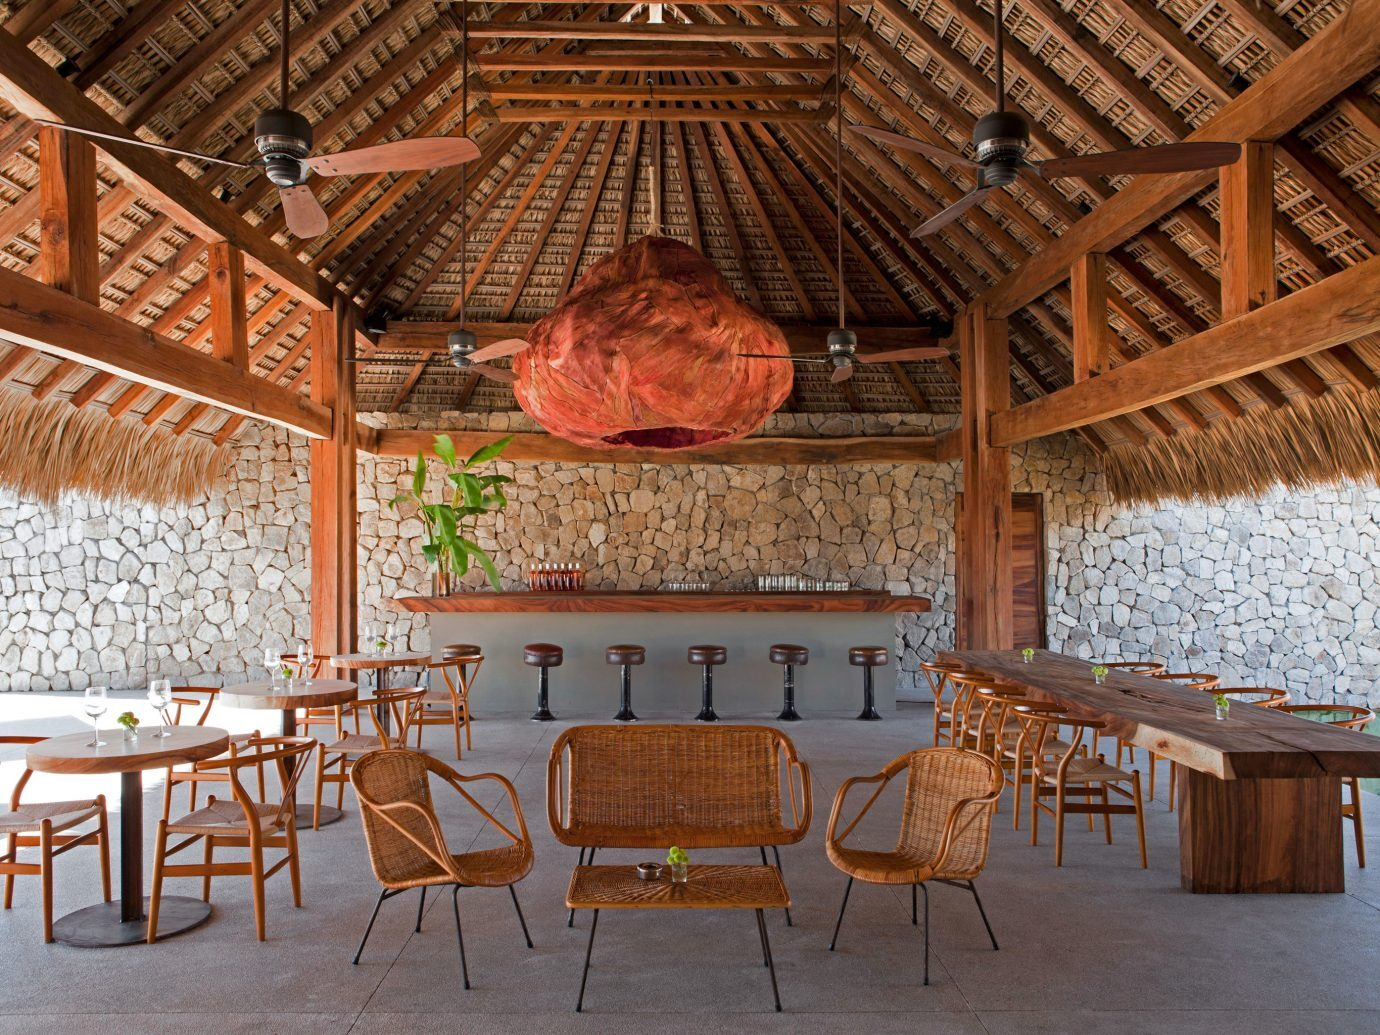 Outdoor bar at Hotel Escondido, Puerto Escondido